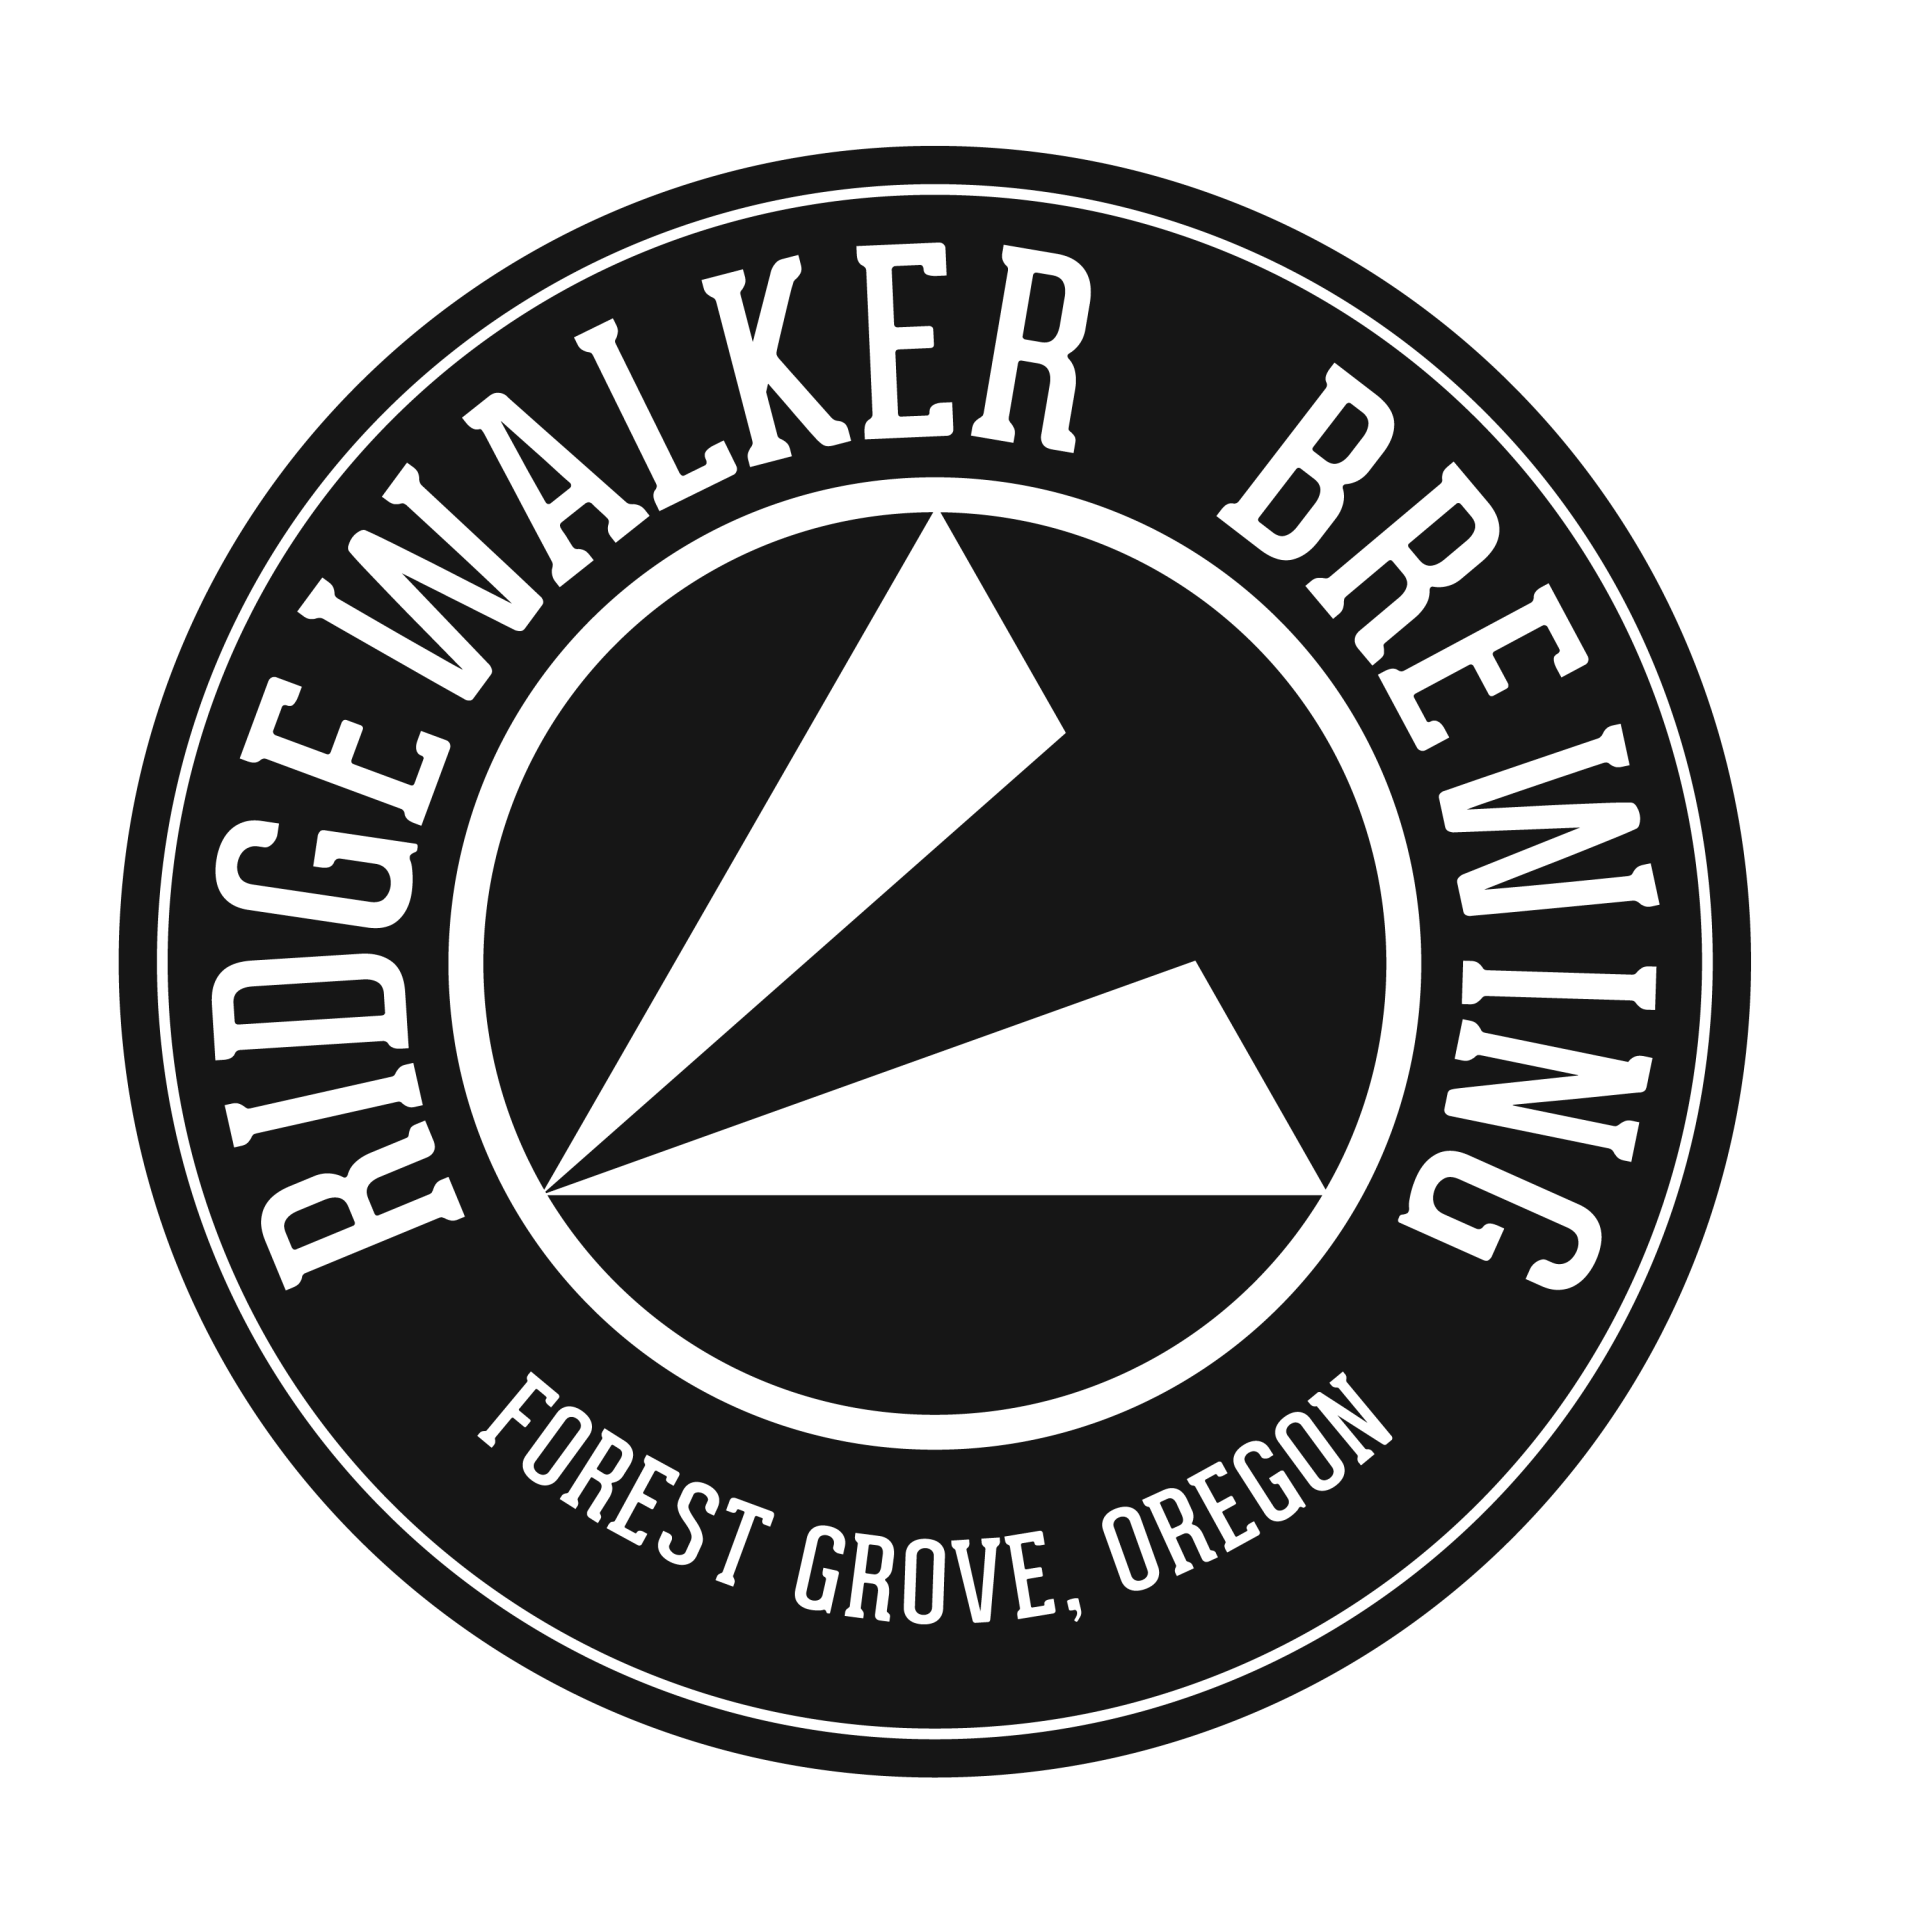 Ridgewalker Brewing